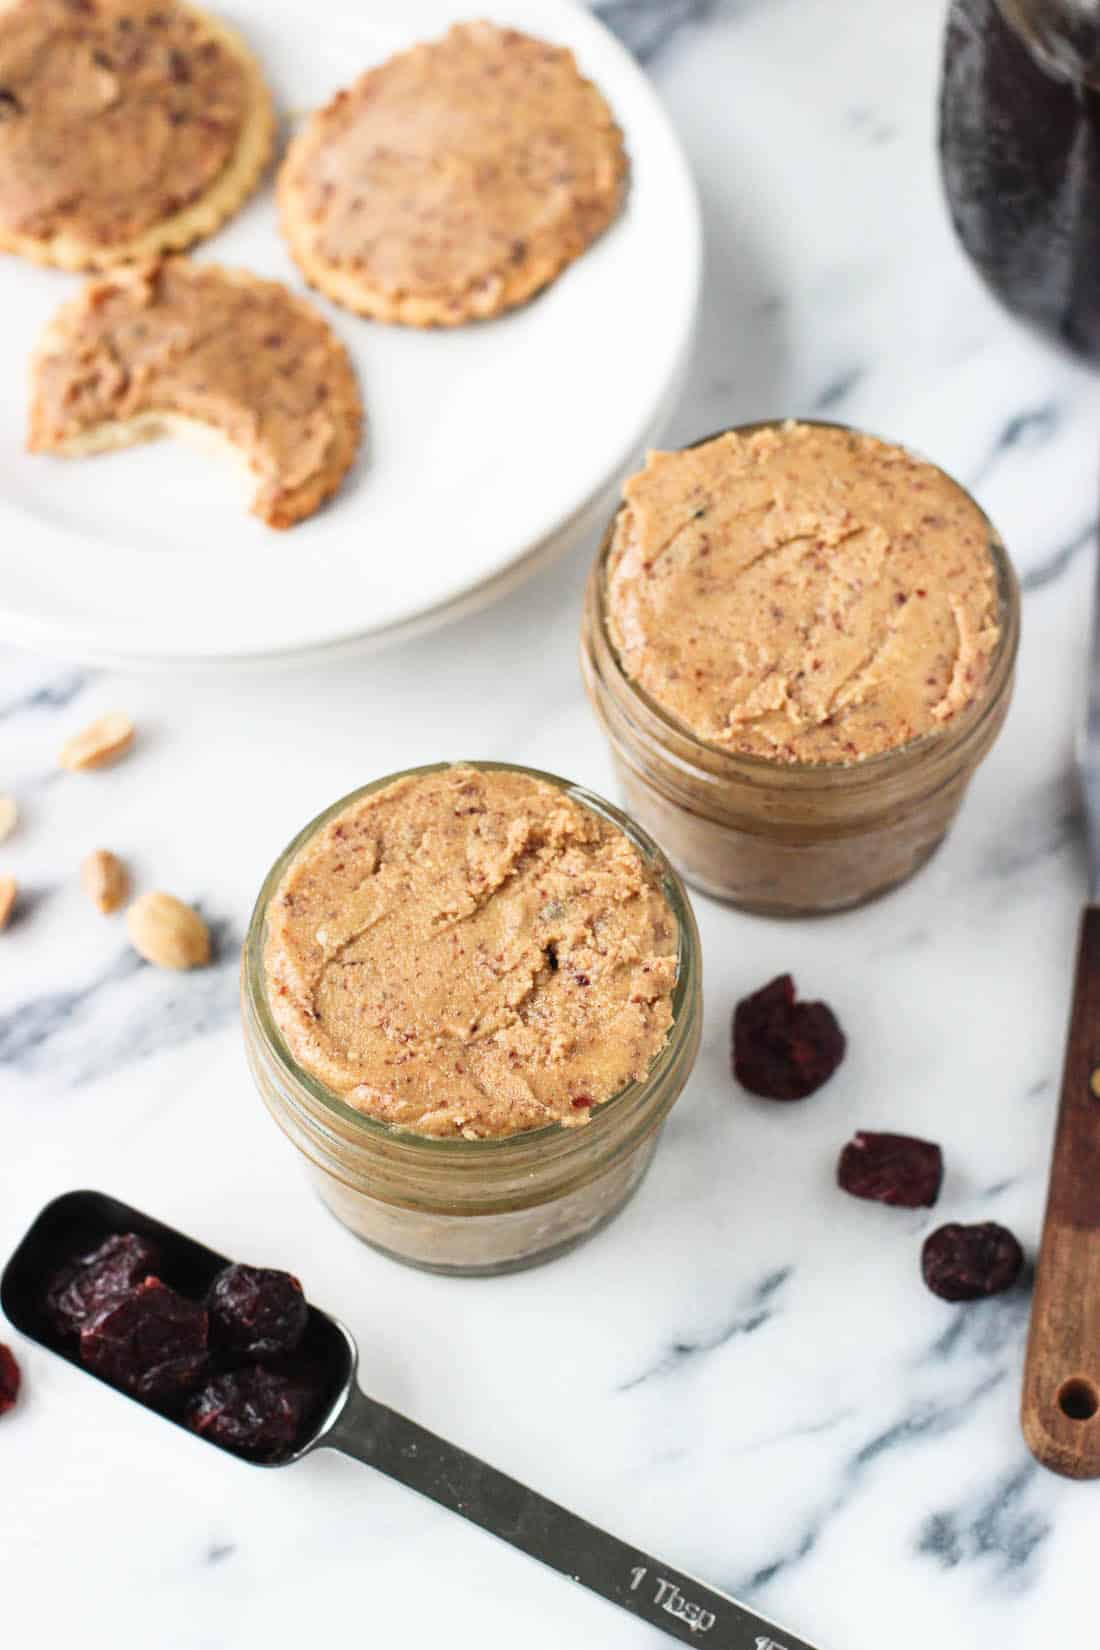 Two full jars of homemade peanut butters next to whole peanuts and dried cranberries.